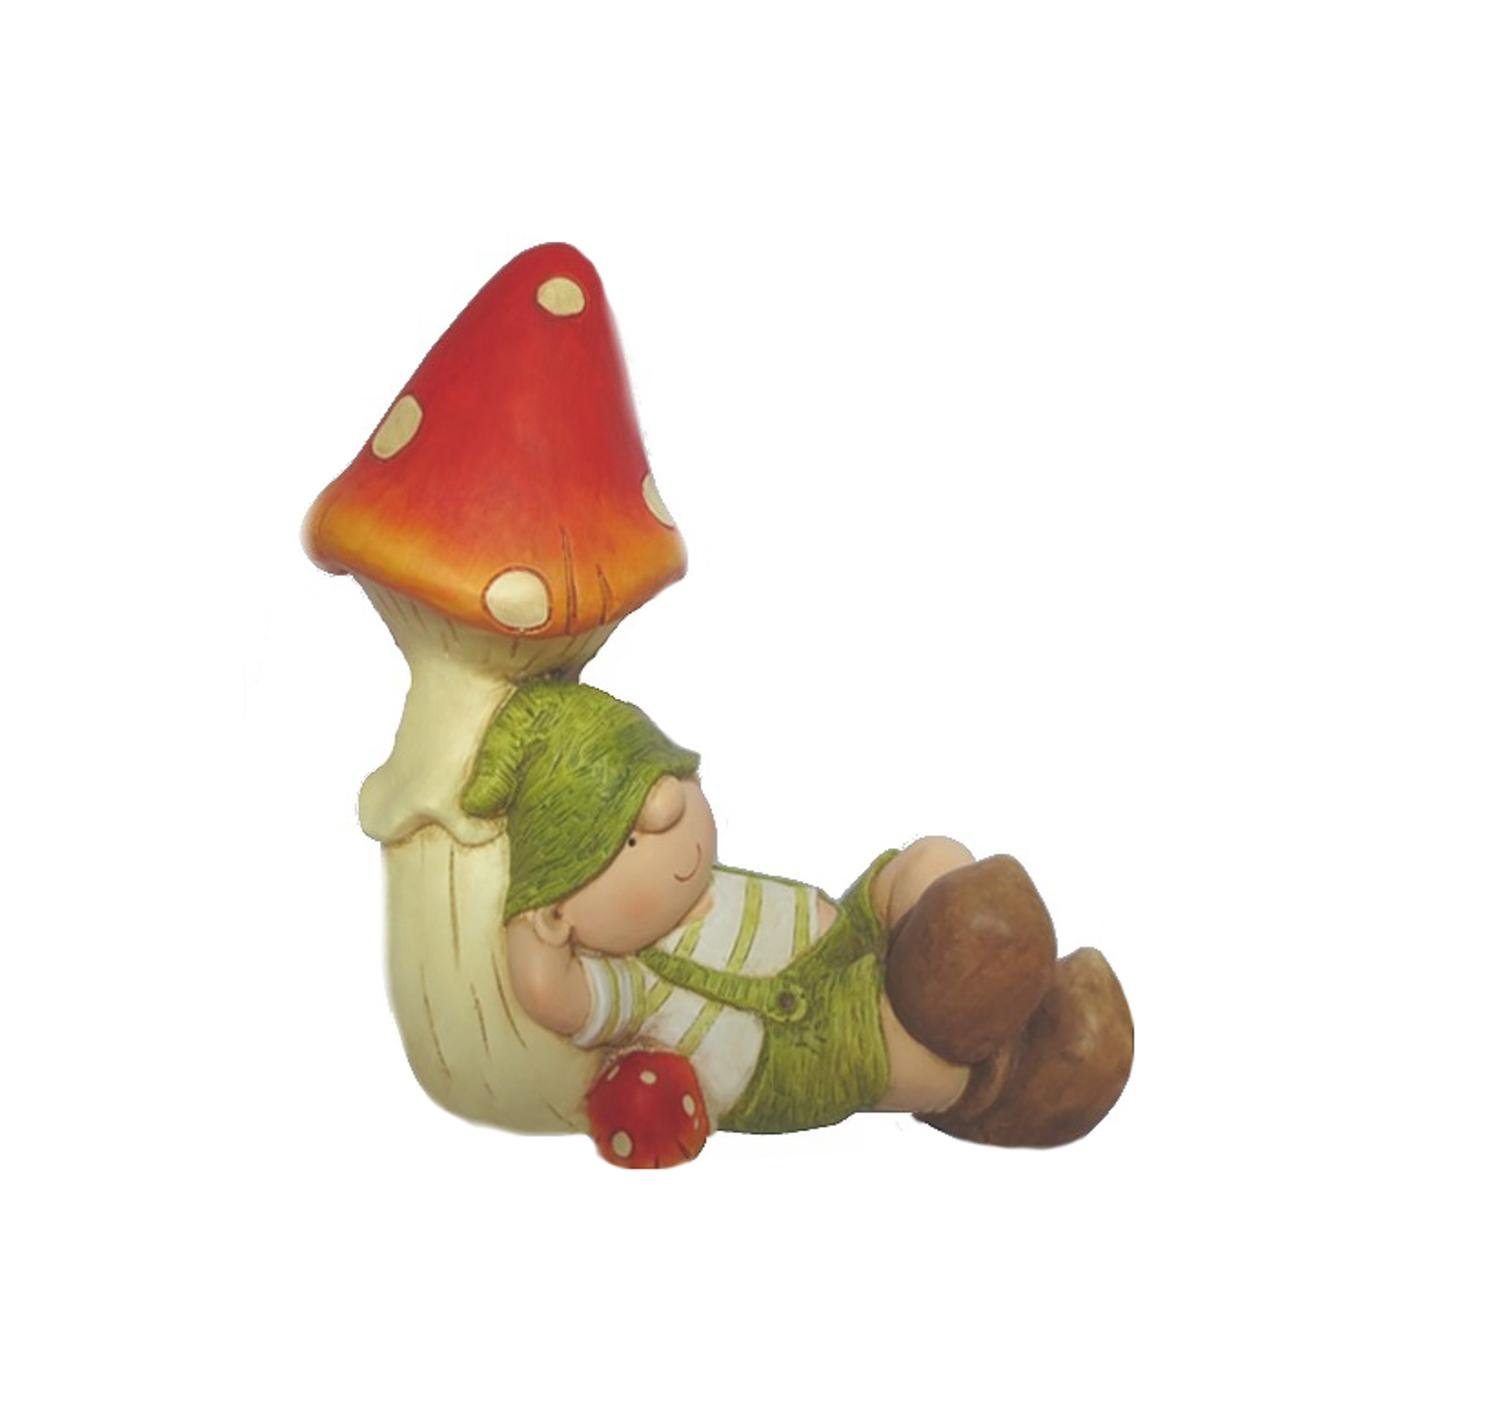 Northlight QQ76196 Young Boy Gnome Under a Mushroom Spring Outdoor Garden Patio Figure Statuary and Fountains, 17'', Green